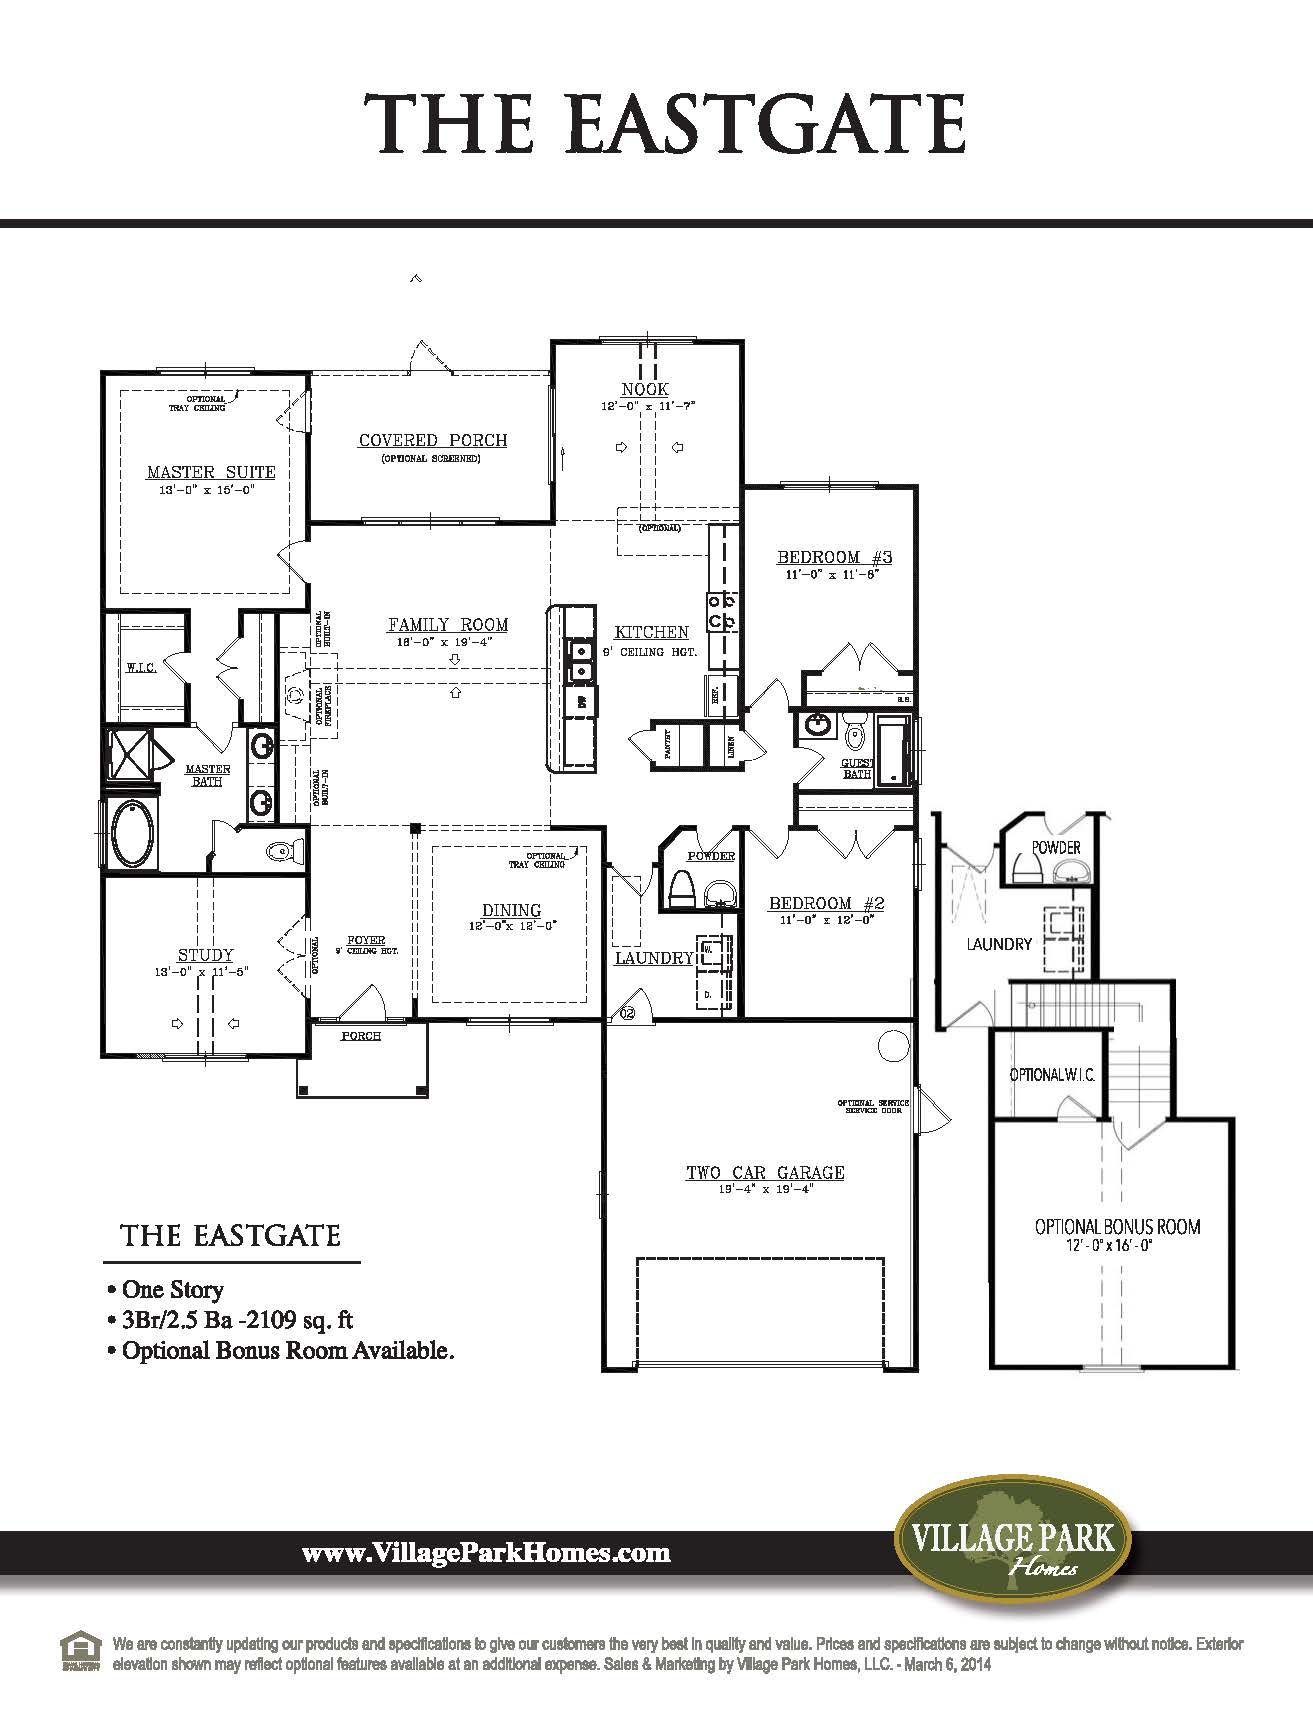 THE EASTGATE floor plan LS  3-6-14-01_new.jpg